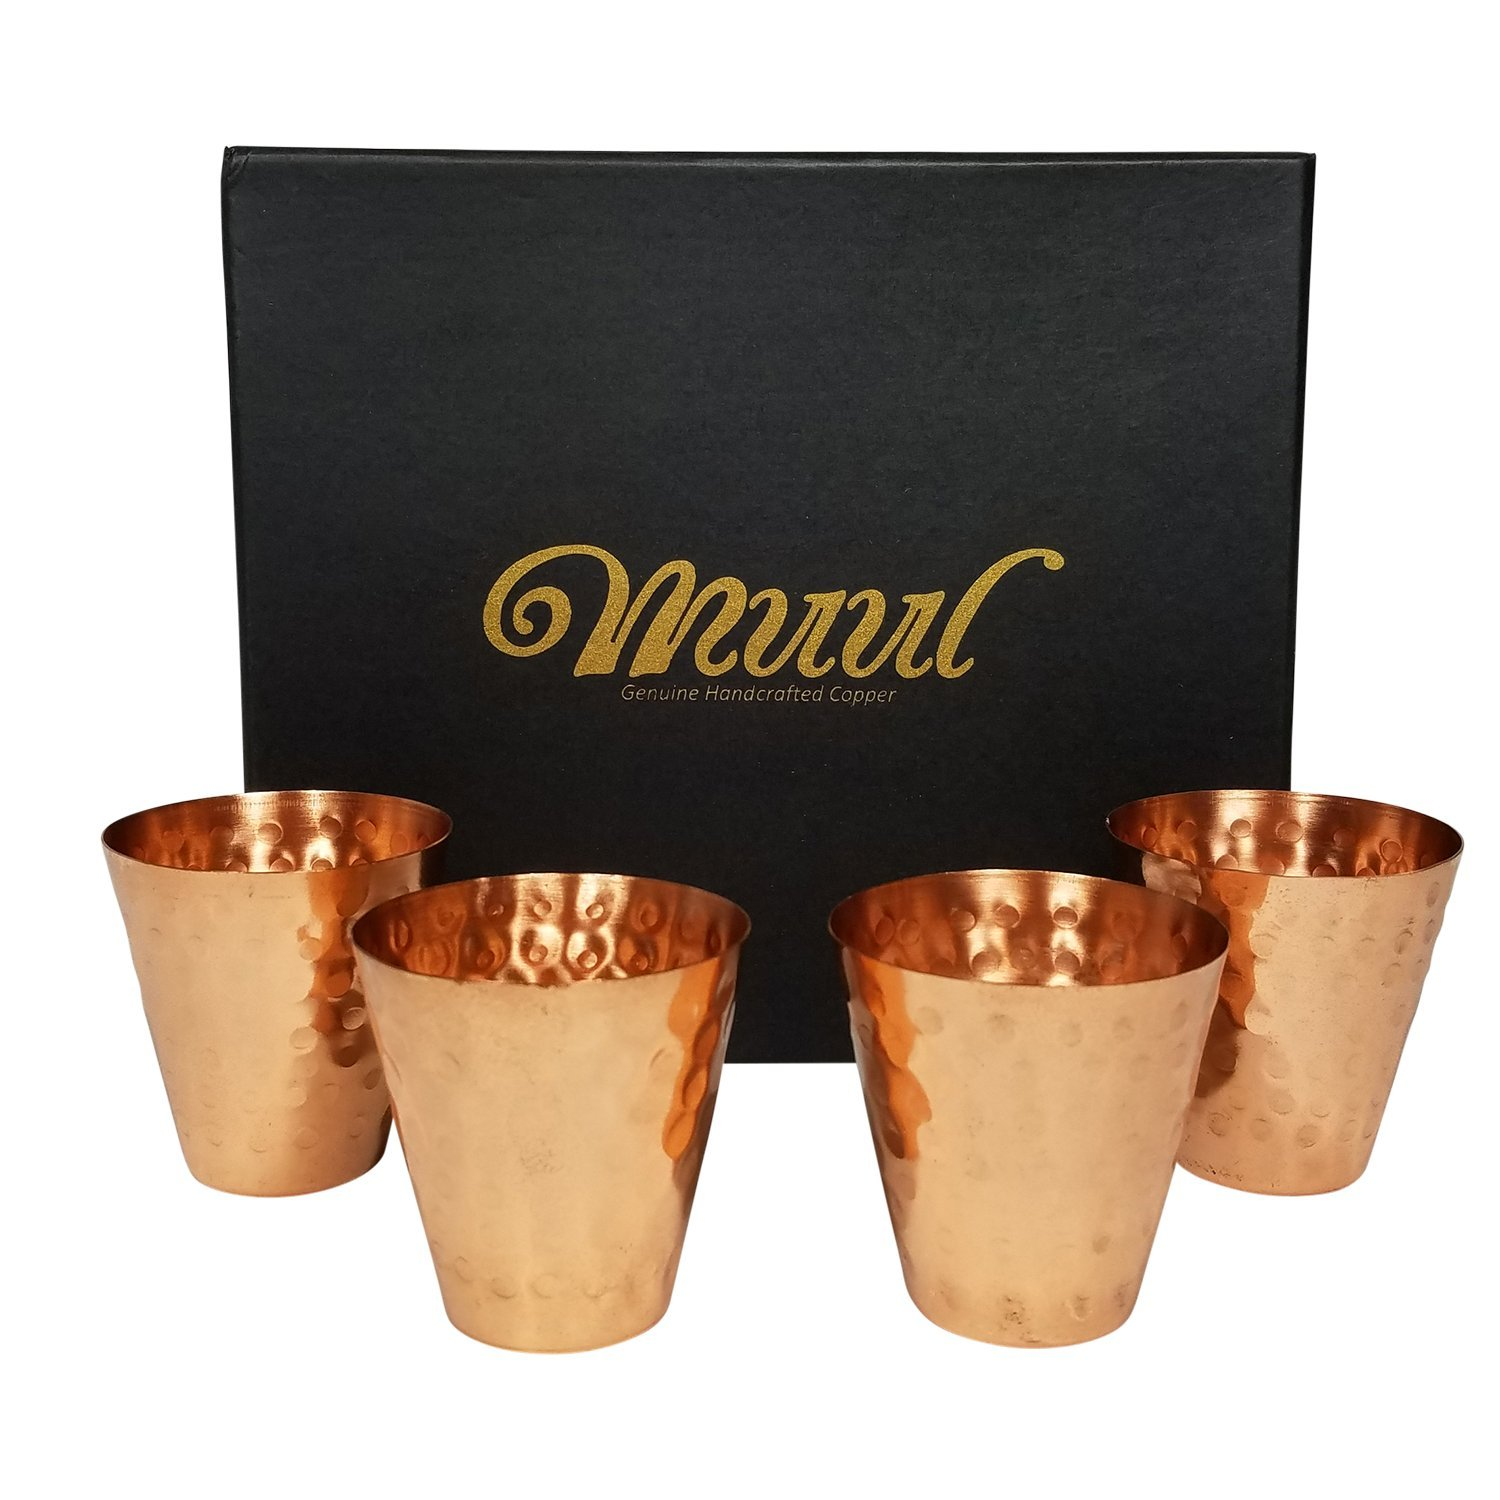 Moscow Mule Copper Shot Glasses Set Of 4 - 100% Pure Copper Handmade Hammered Shot Glasses in Gift box,With Food Safe Protection Lining ! Includes 4 - Copper Shot Glasses - By MUUL